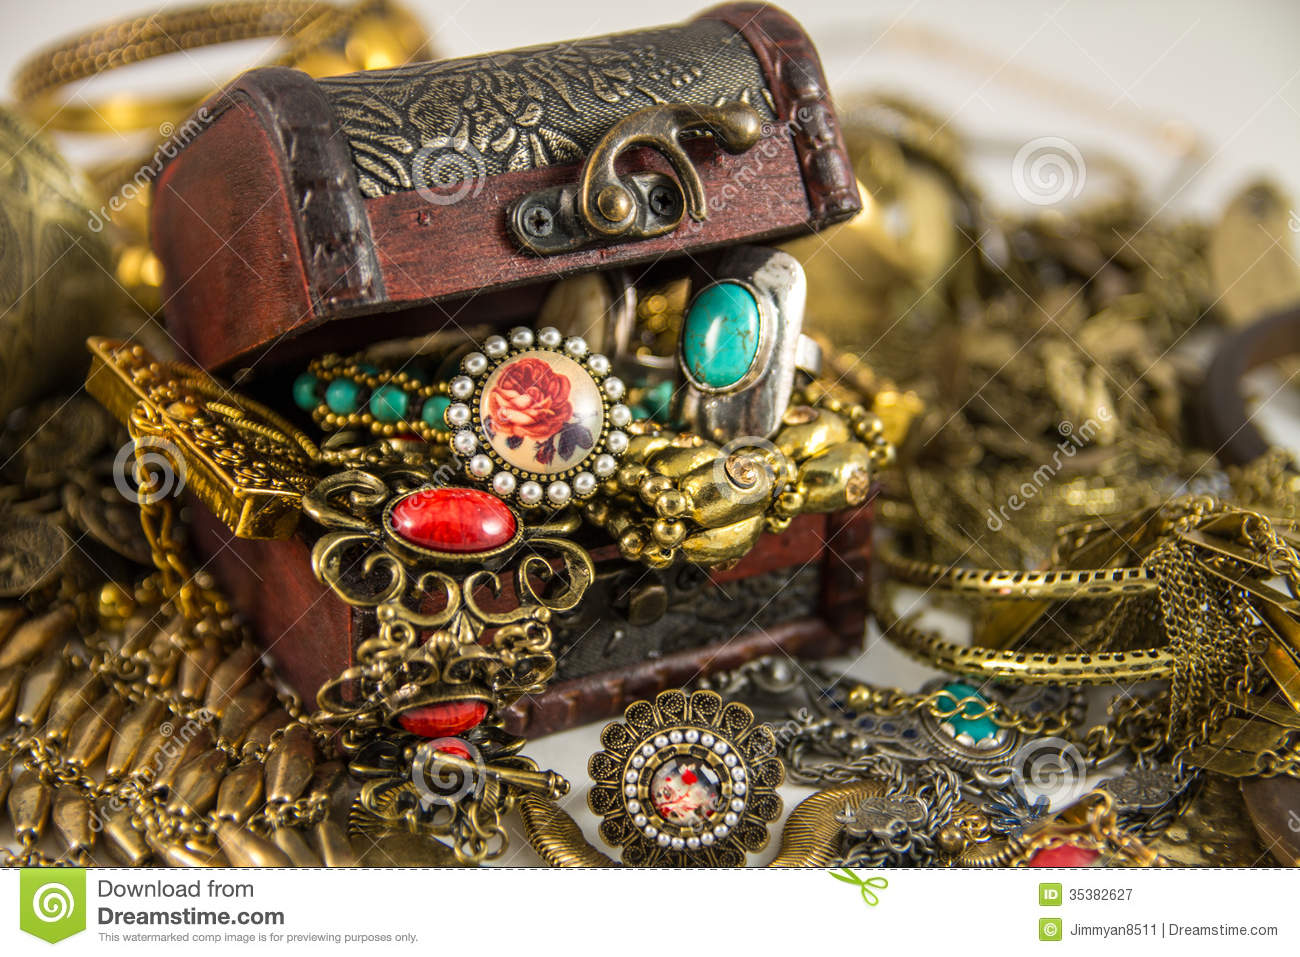 Treasure Chest Royalty Free Stock Photography - Image: 35382627: www.dreamstime.com/royalty-free-stock-photography-treasure-chest-s...